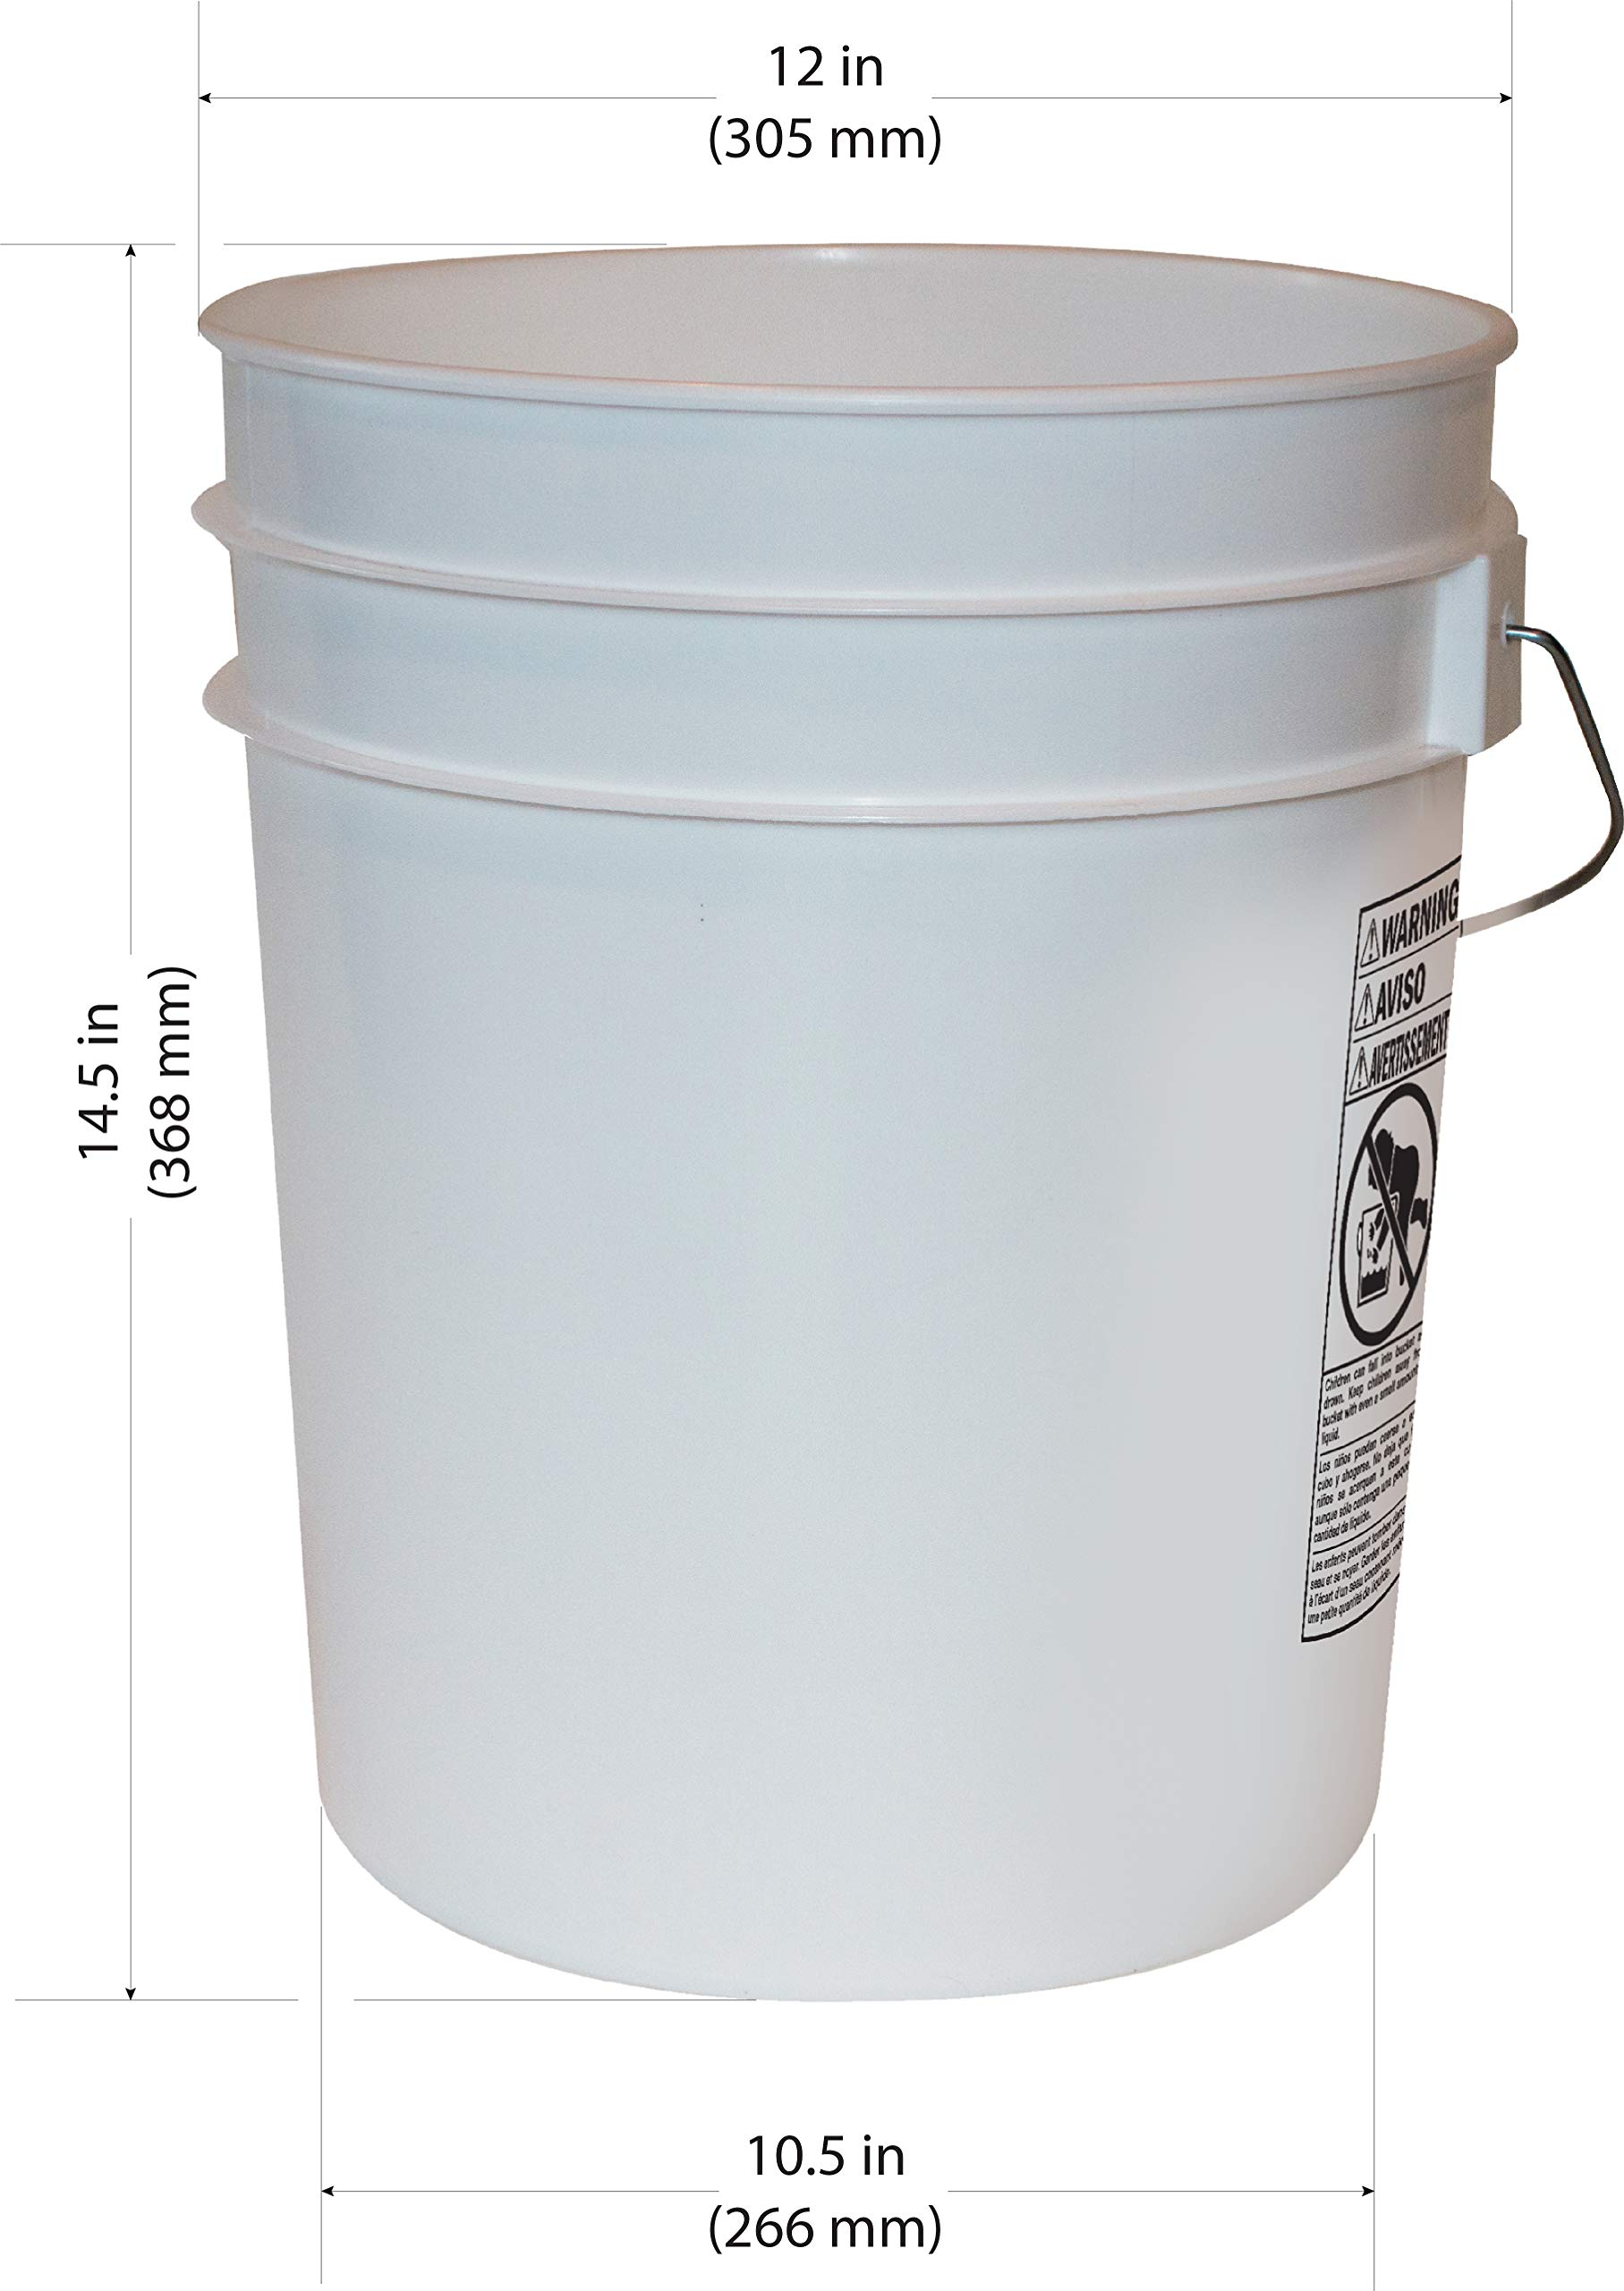 5 Gallon Heavy Duty White Plastic Bucket, 10-Pack - Argee RG5700/10 by Argee (Image #2)